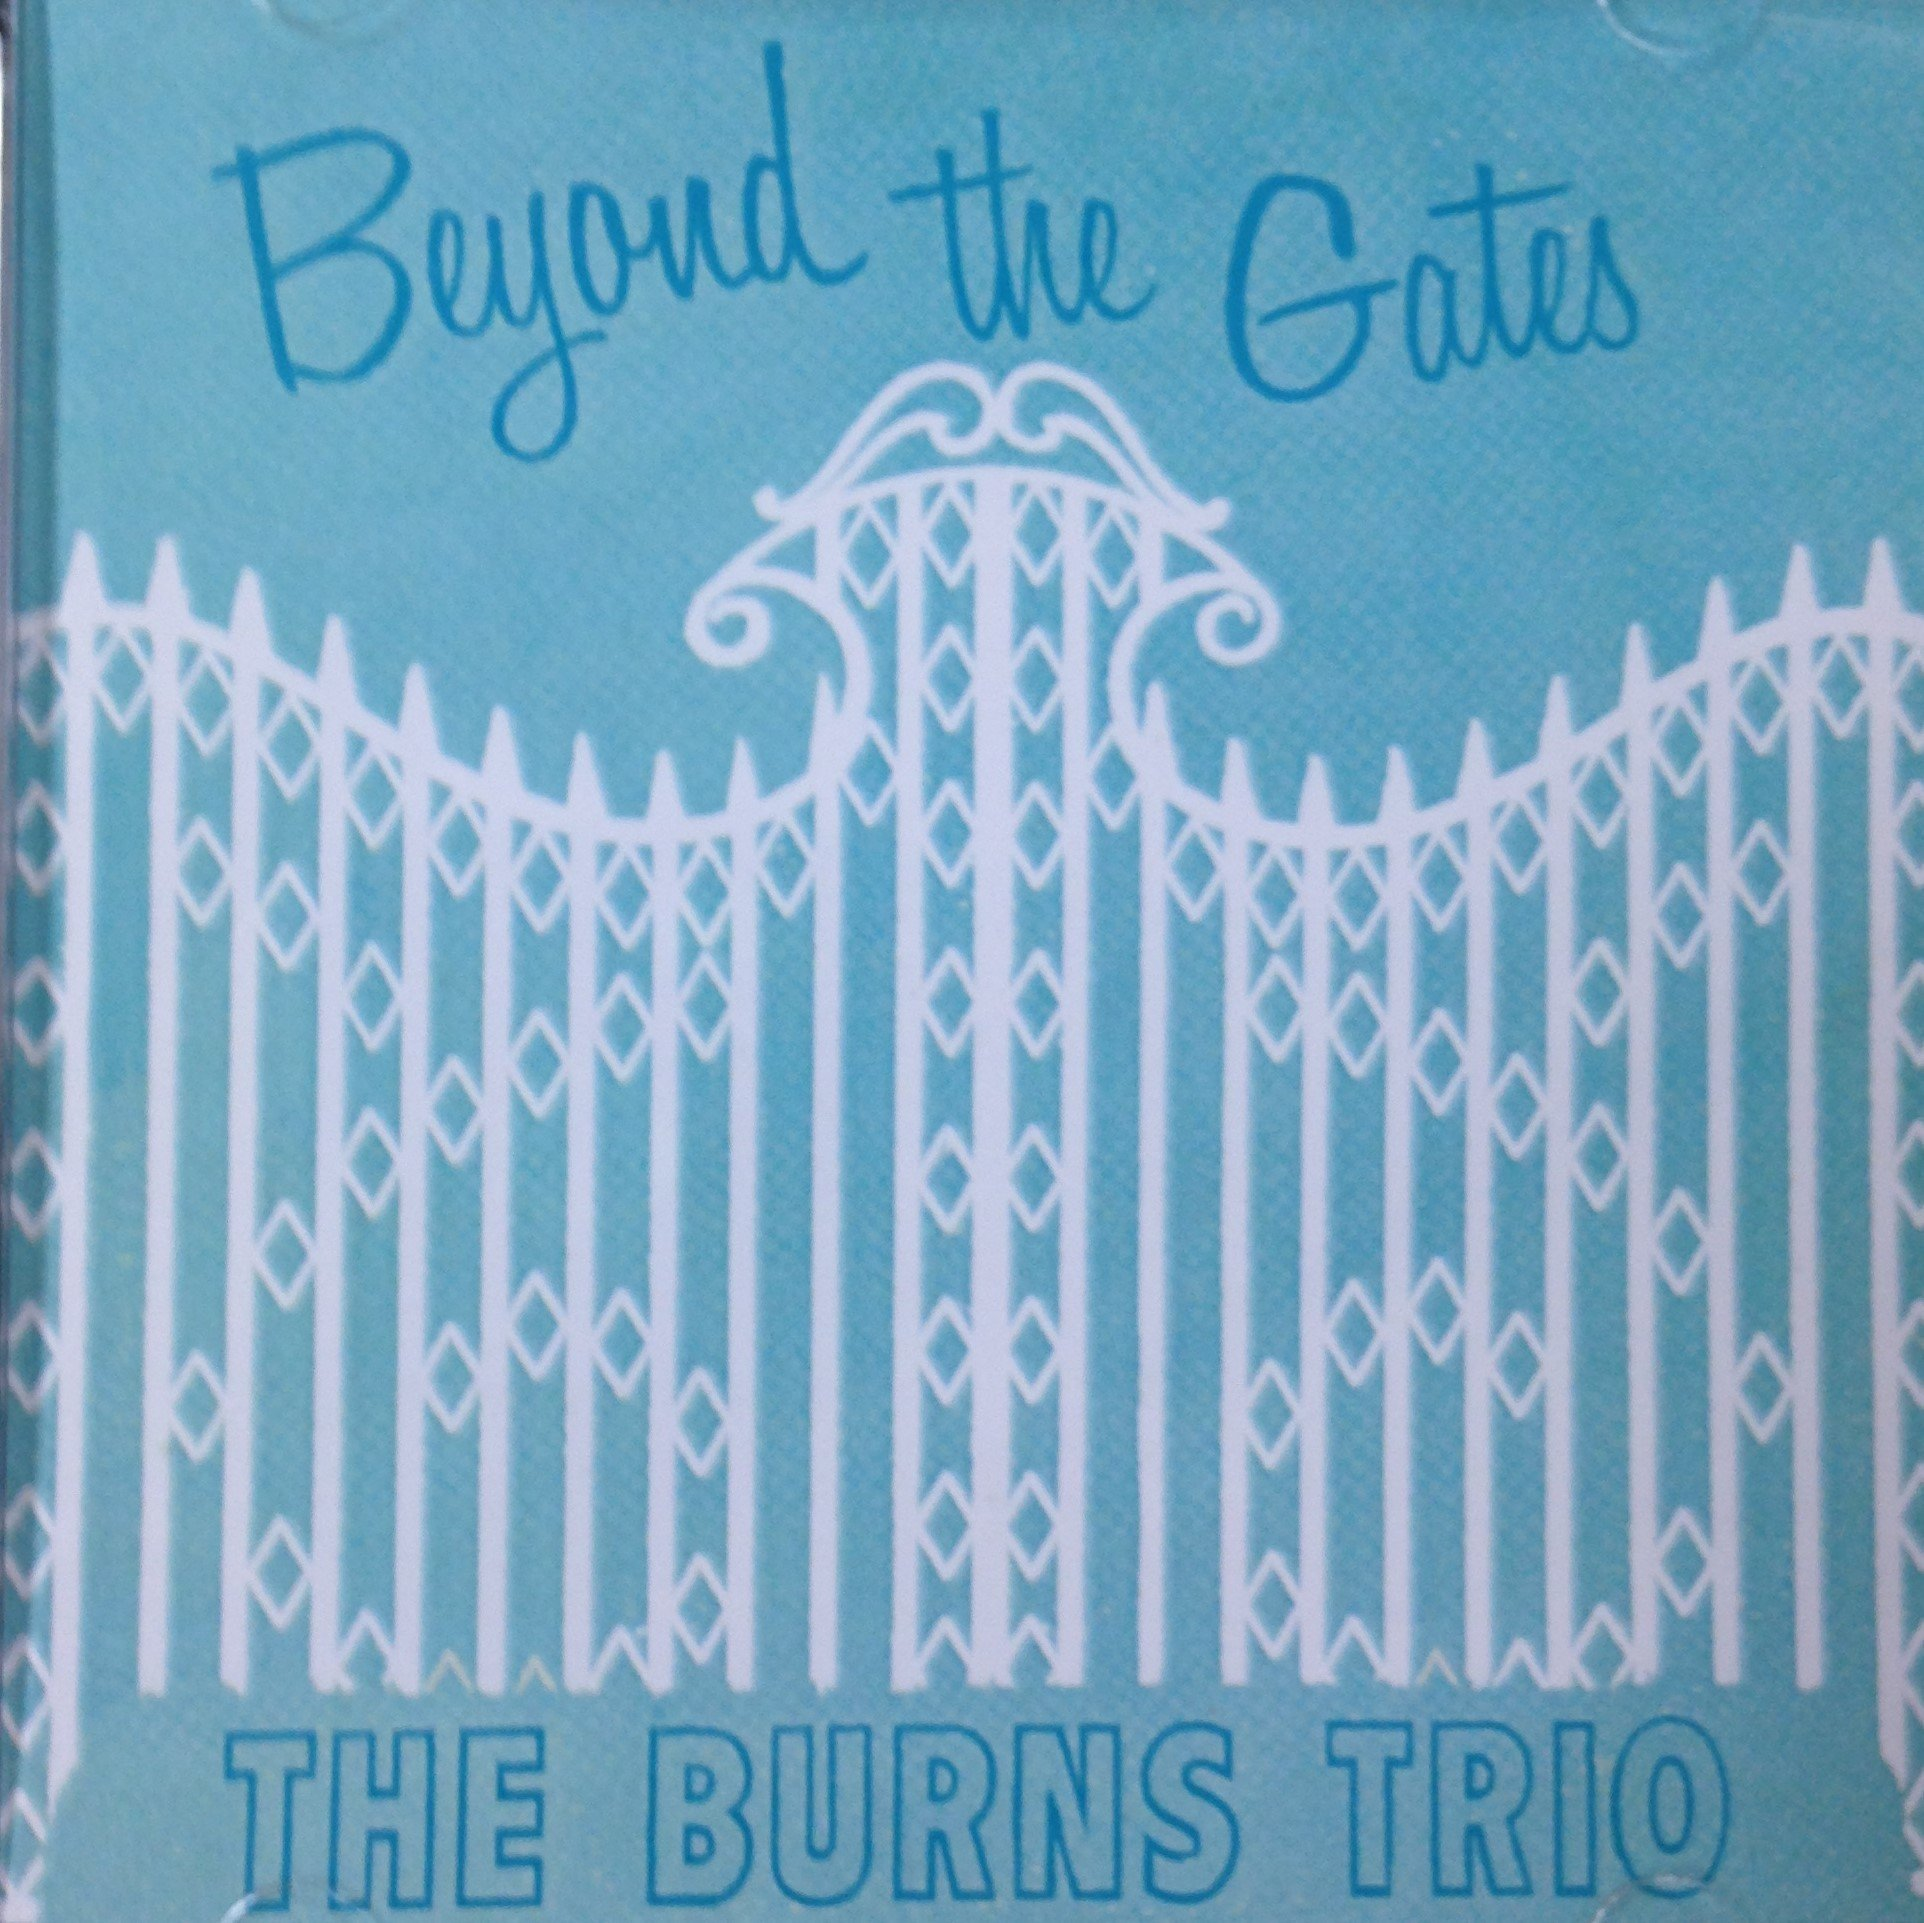 The Burns Trio:  Beyond the Gates  CD 00039